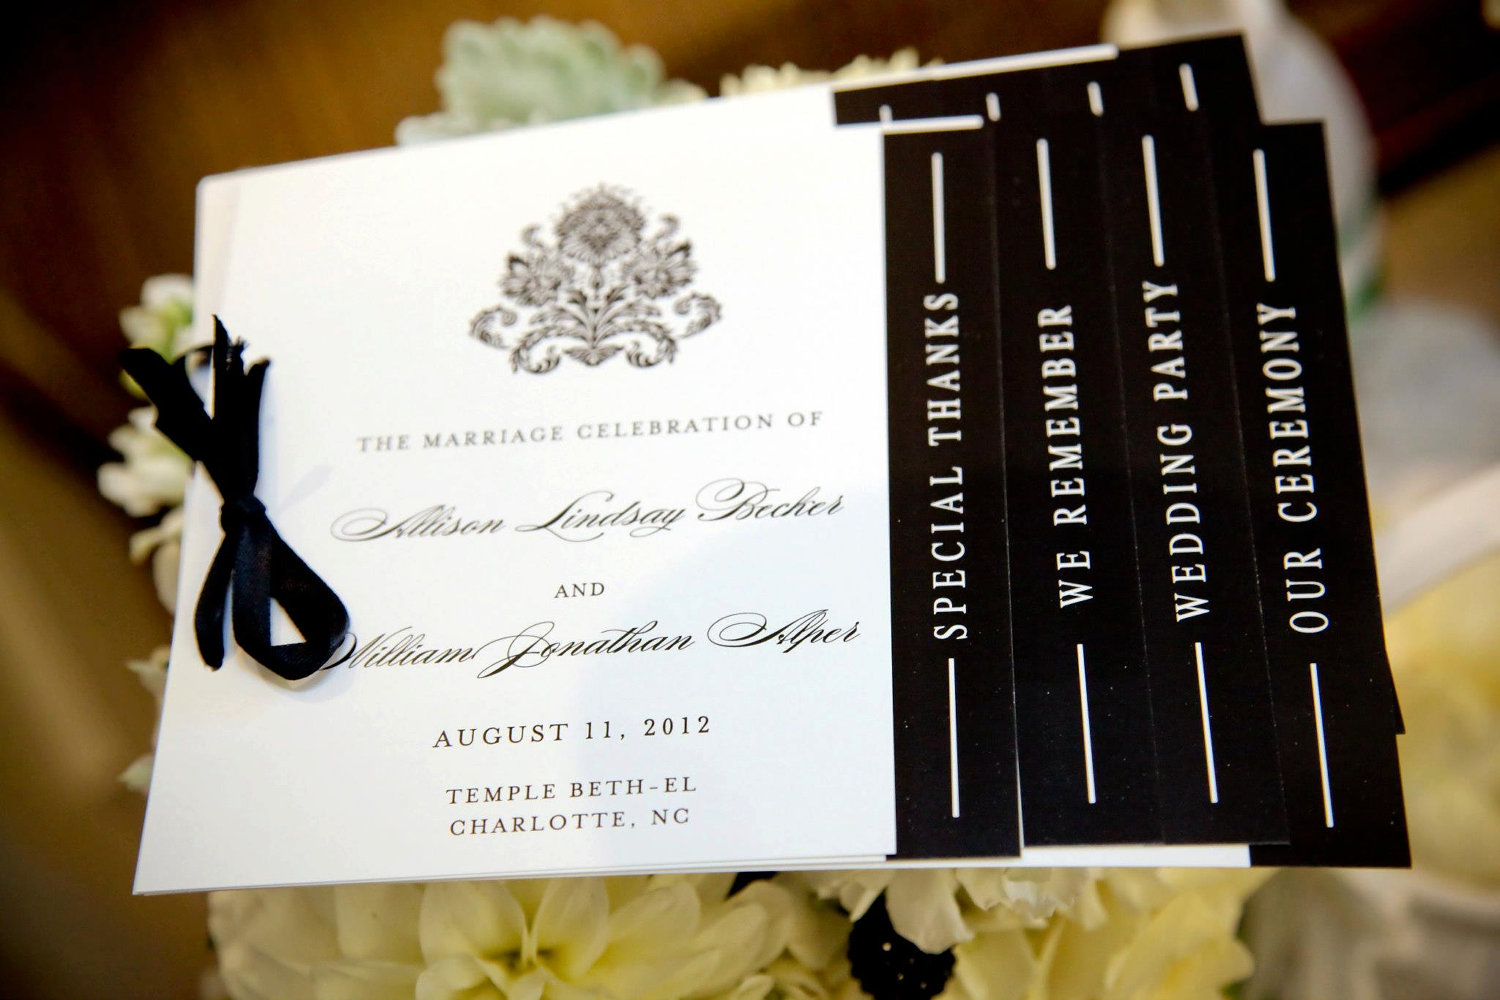 wedding invitation programs - 28 images - wedding invitation program ...